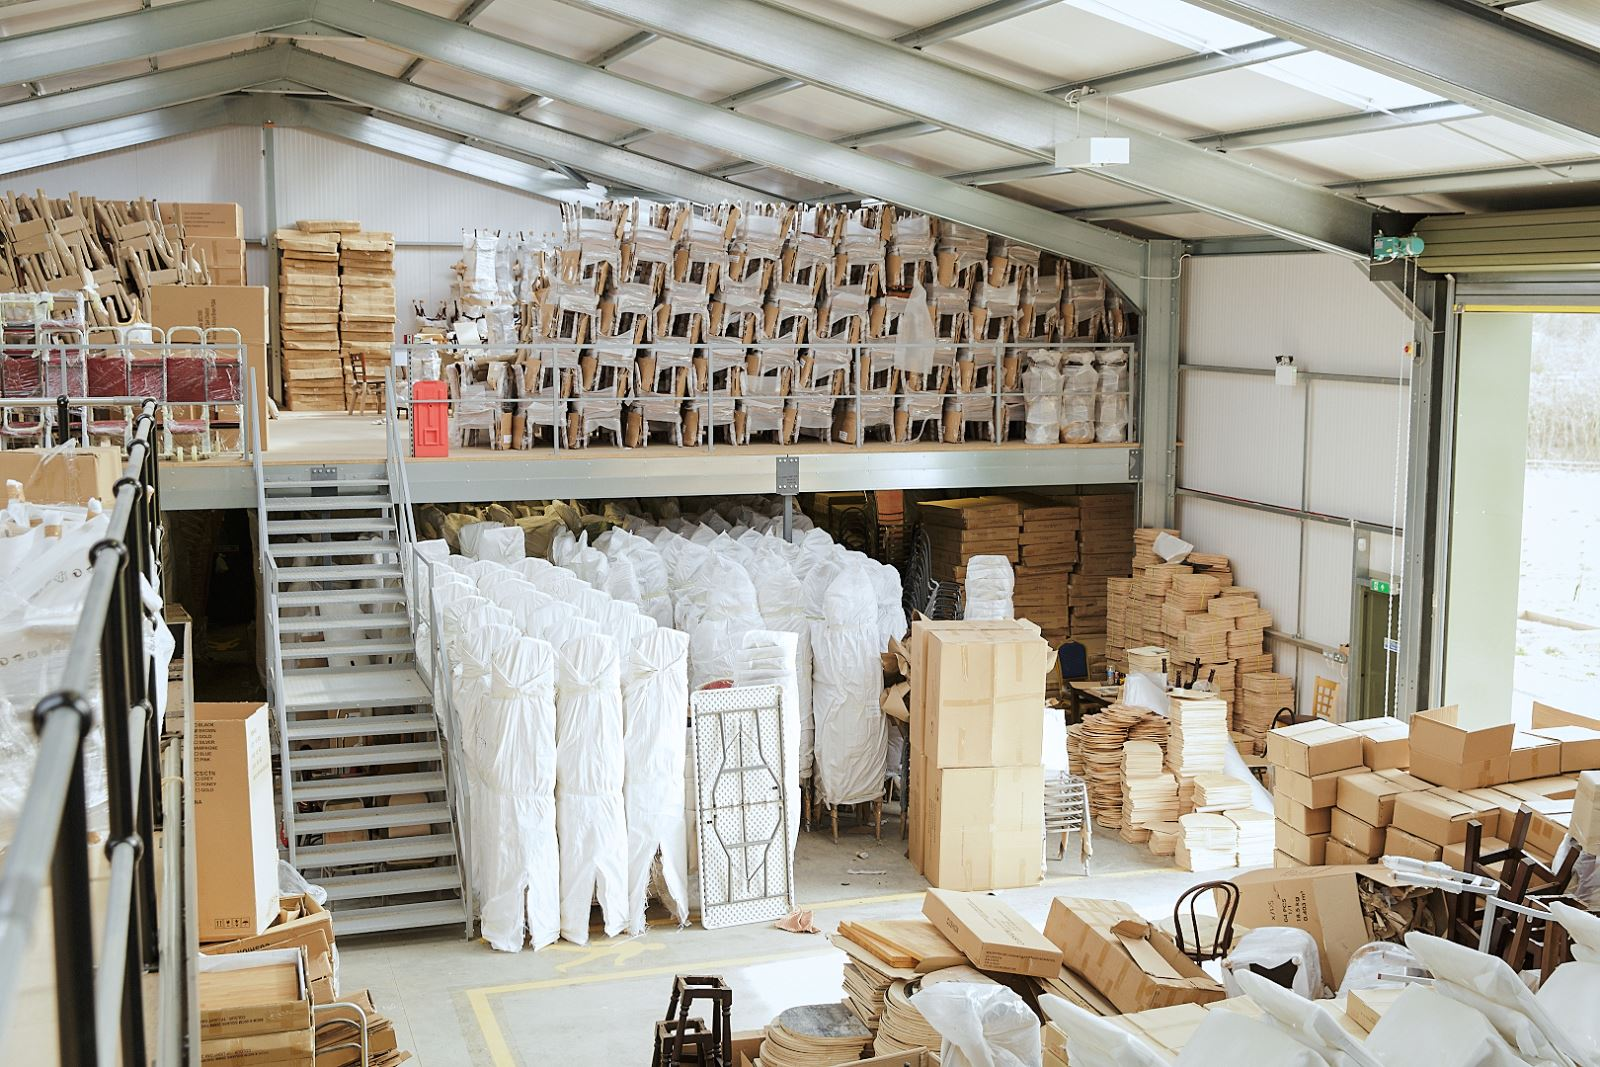 Trent Furniture warehouse and storage facilities